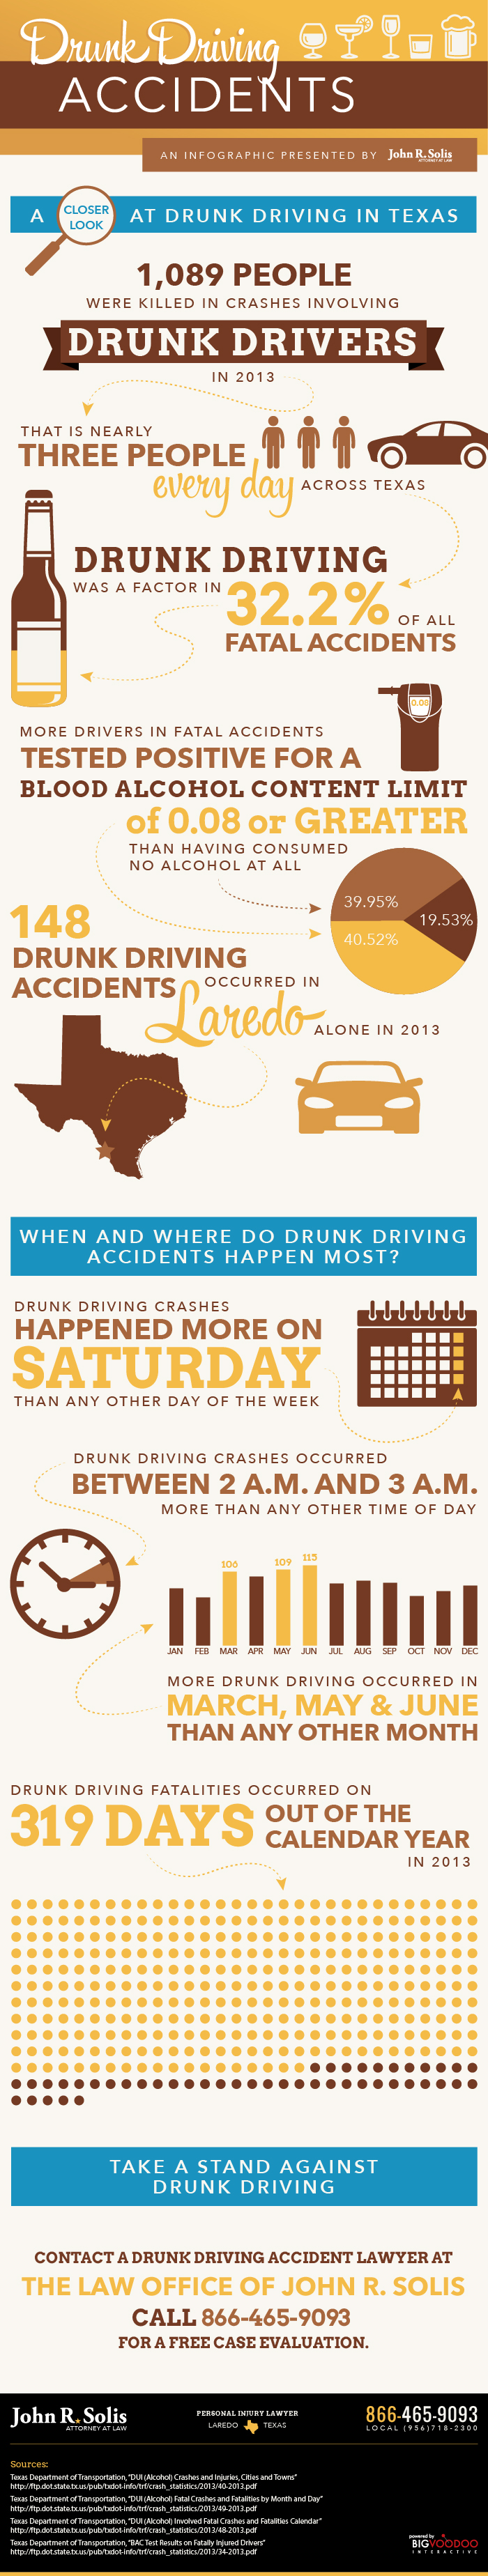 Solis_Infographic_DrunkDriving